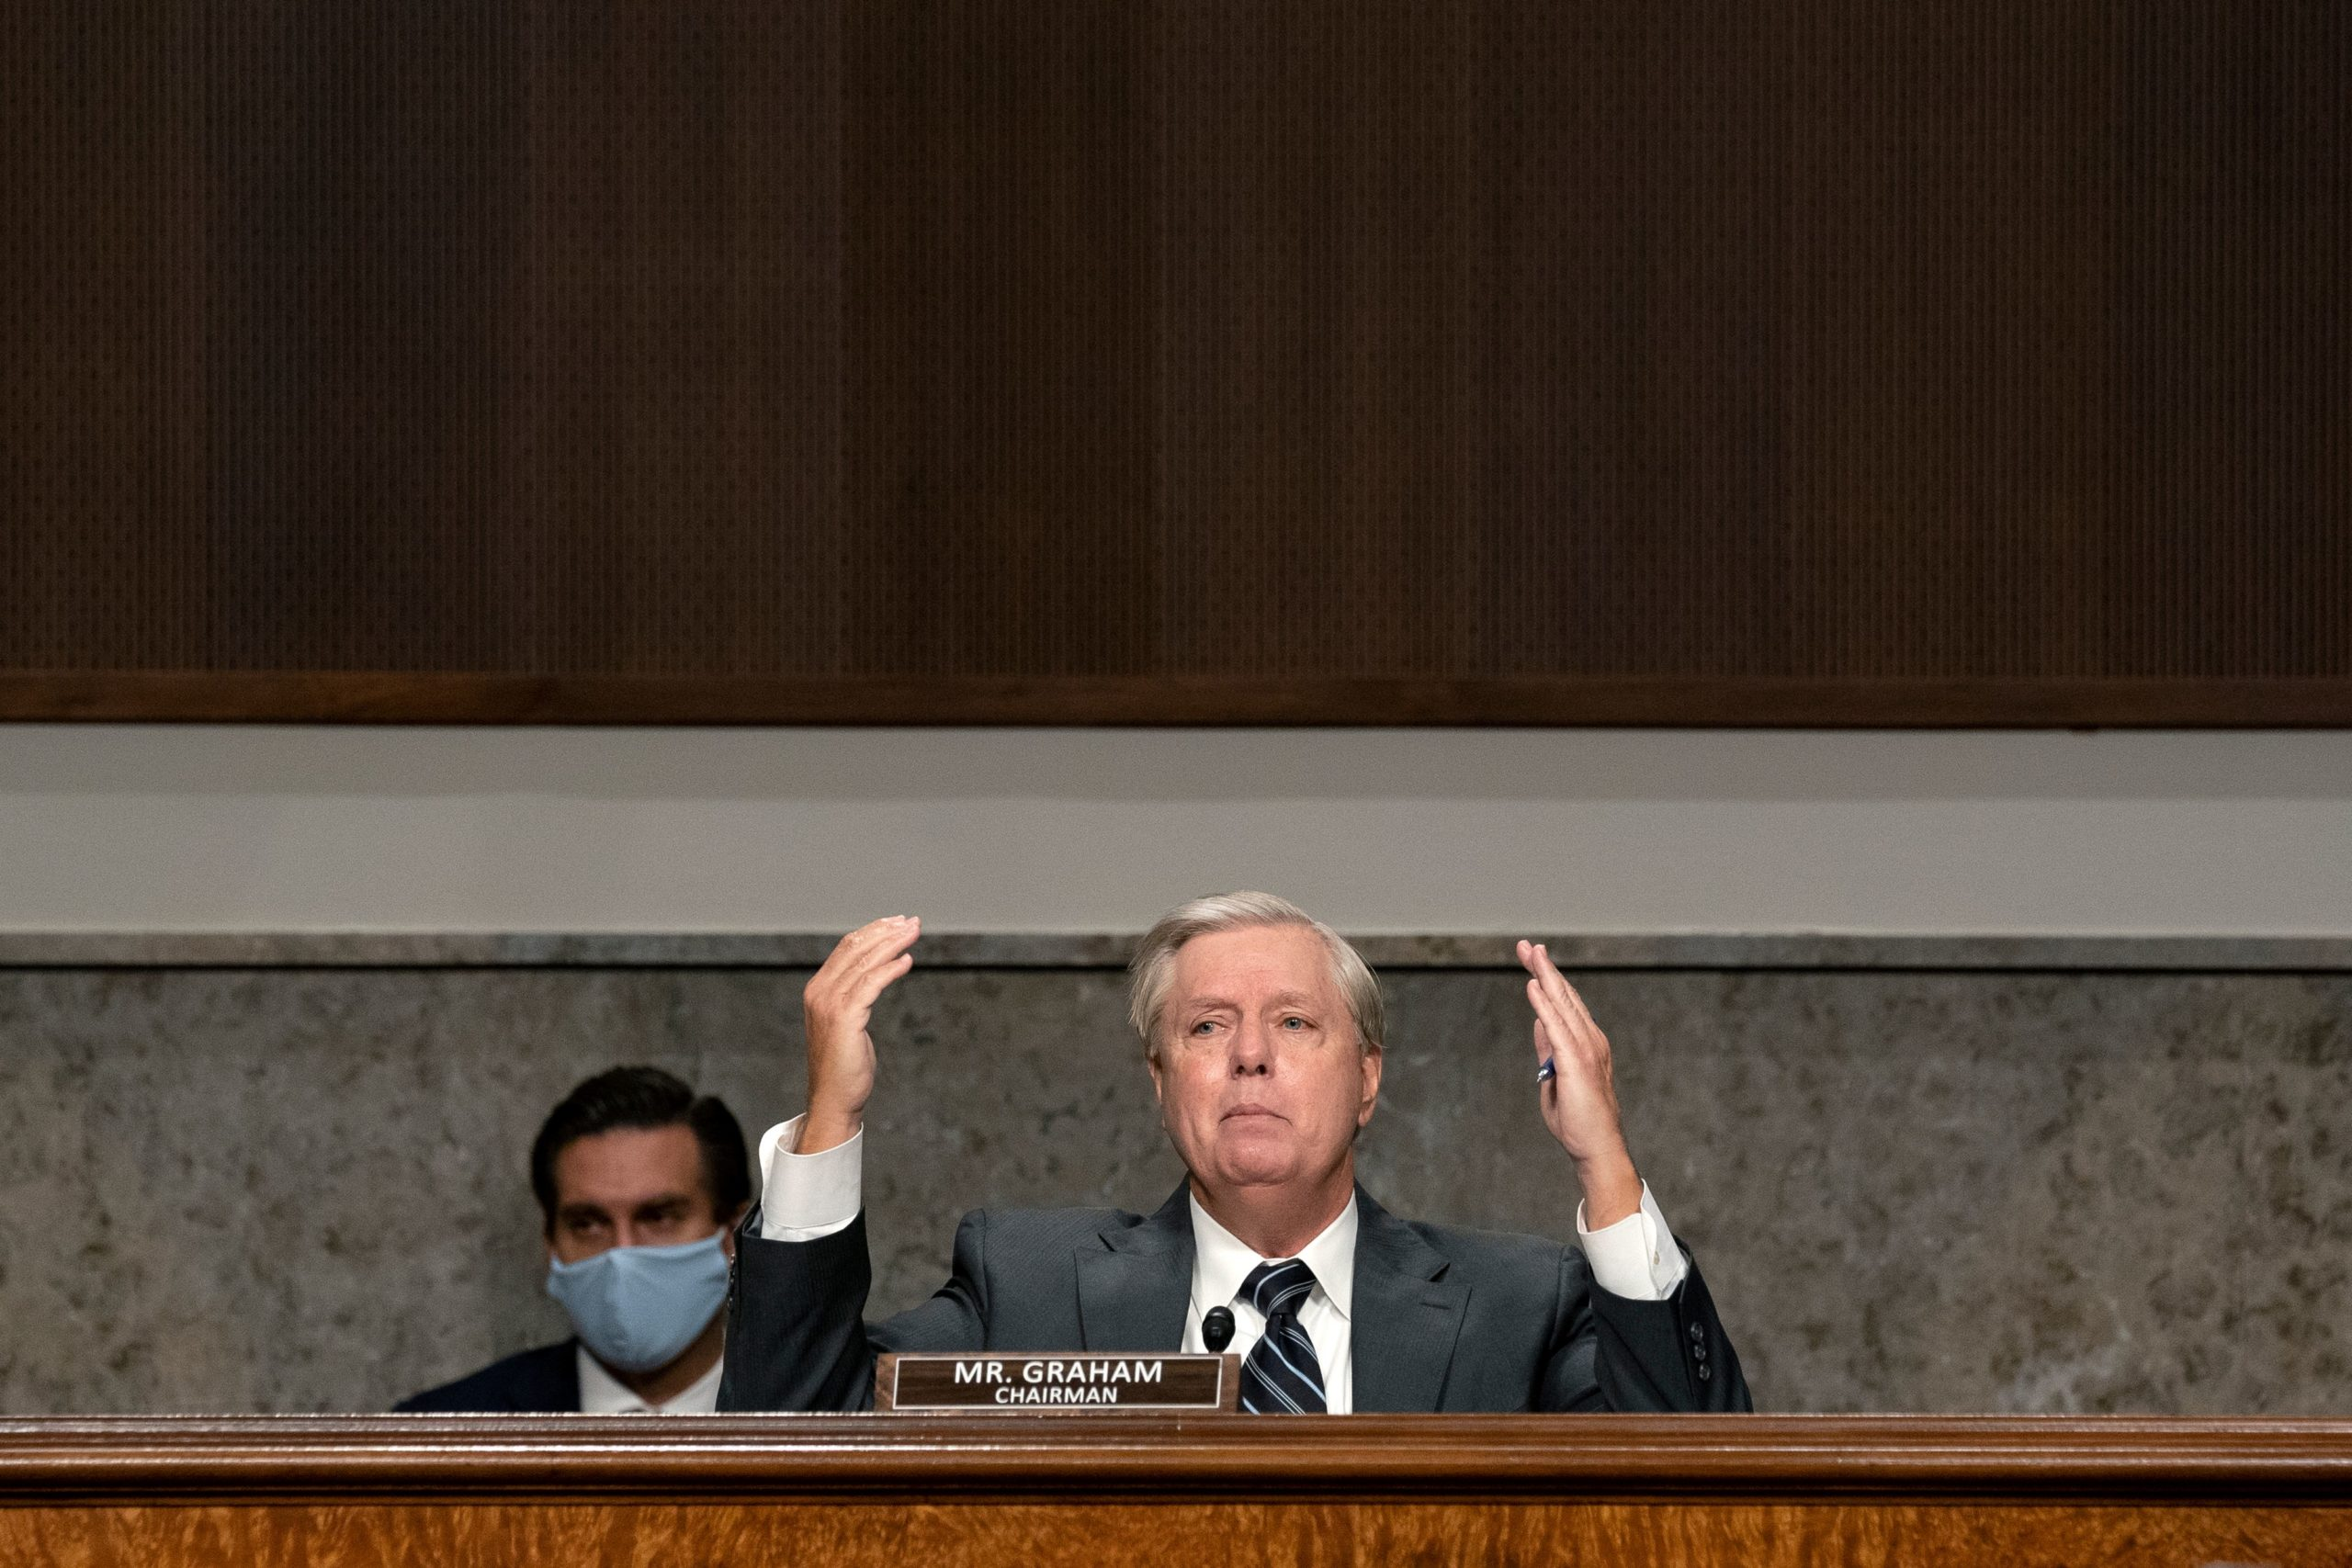 Sen. Lindsey Graham, a Republican from South Carolina and chairman of the Senate Judiciary Committee, speaks during a hearing on Sept. 30. (Stefani Reynolds/Pool/AFP via Getty Images)